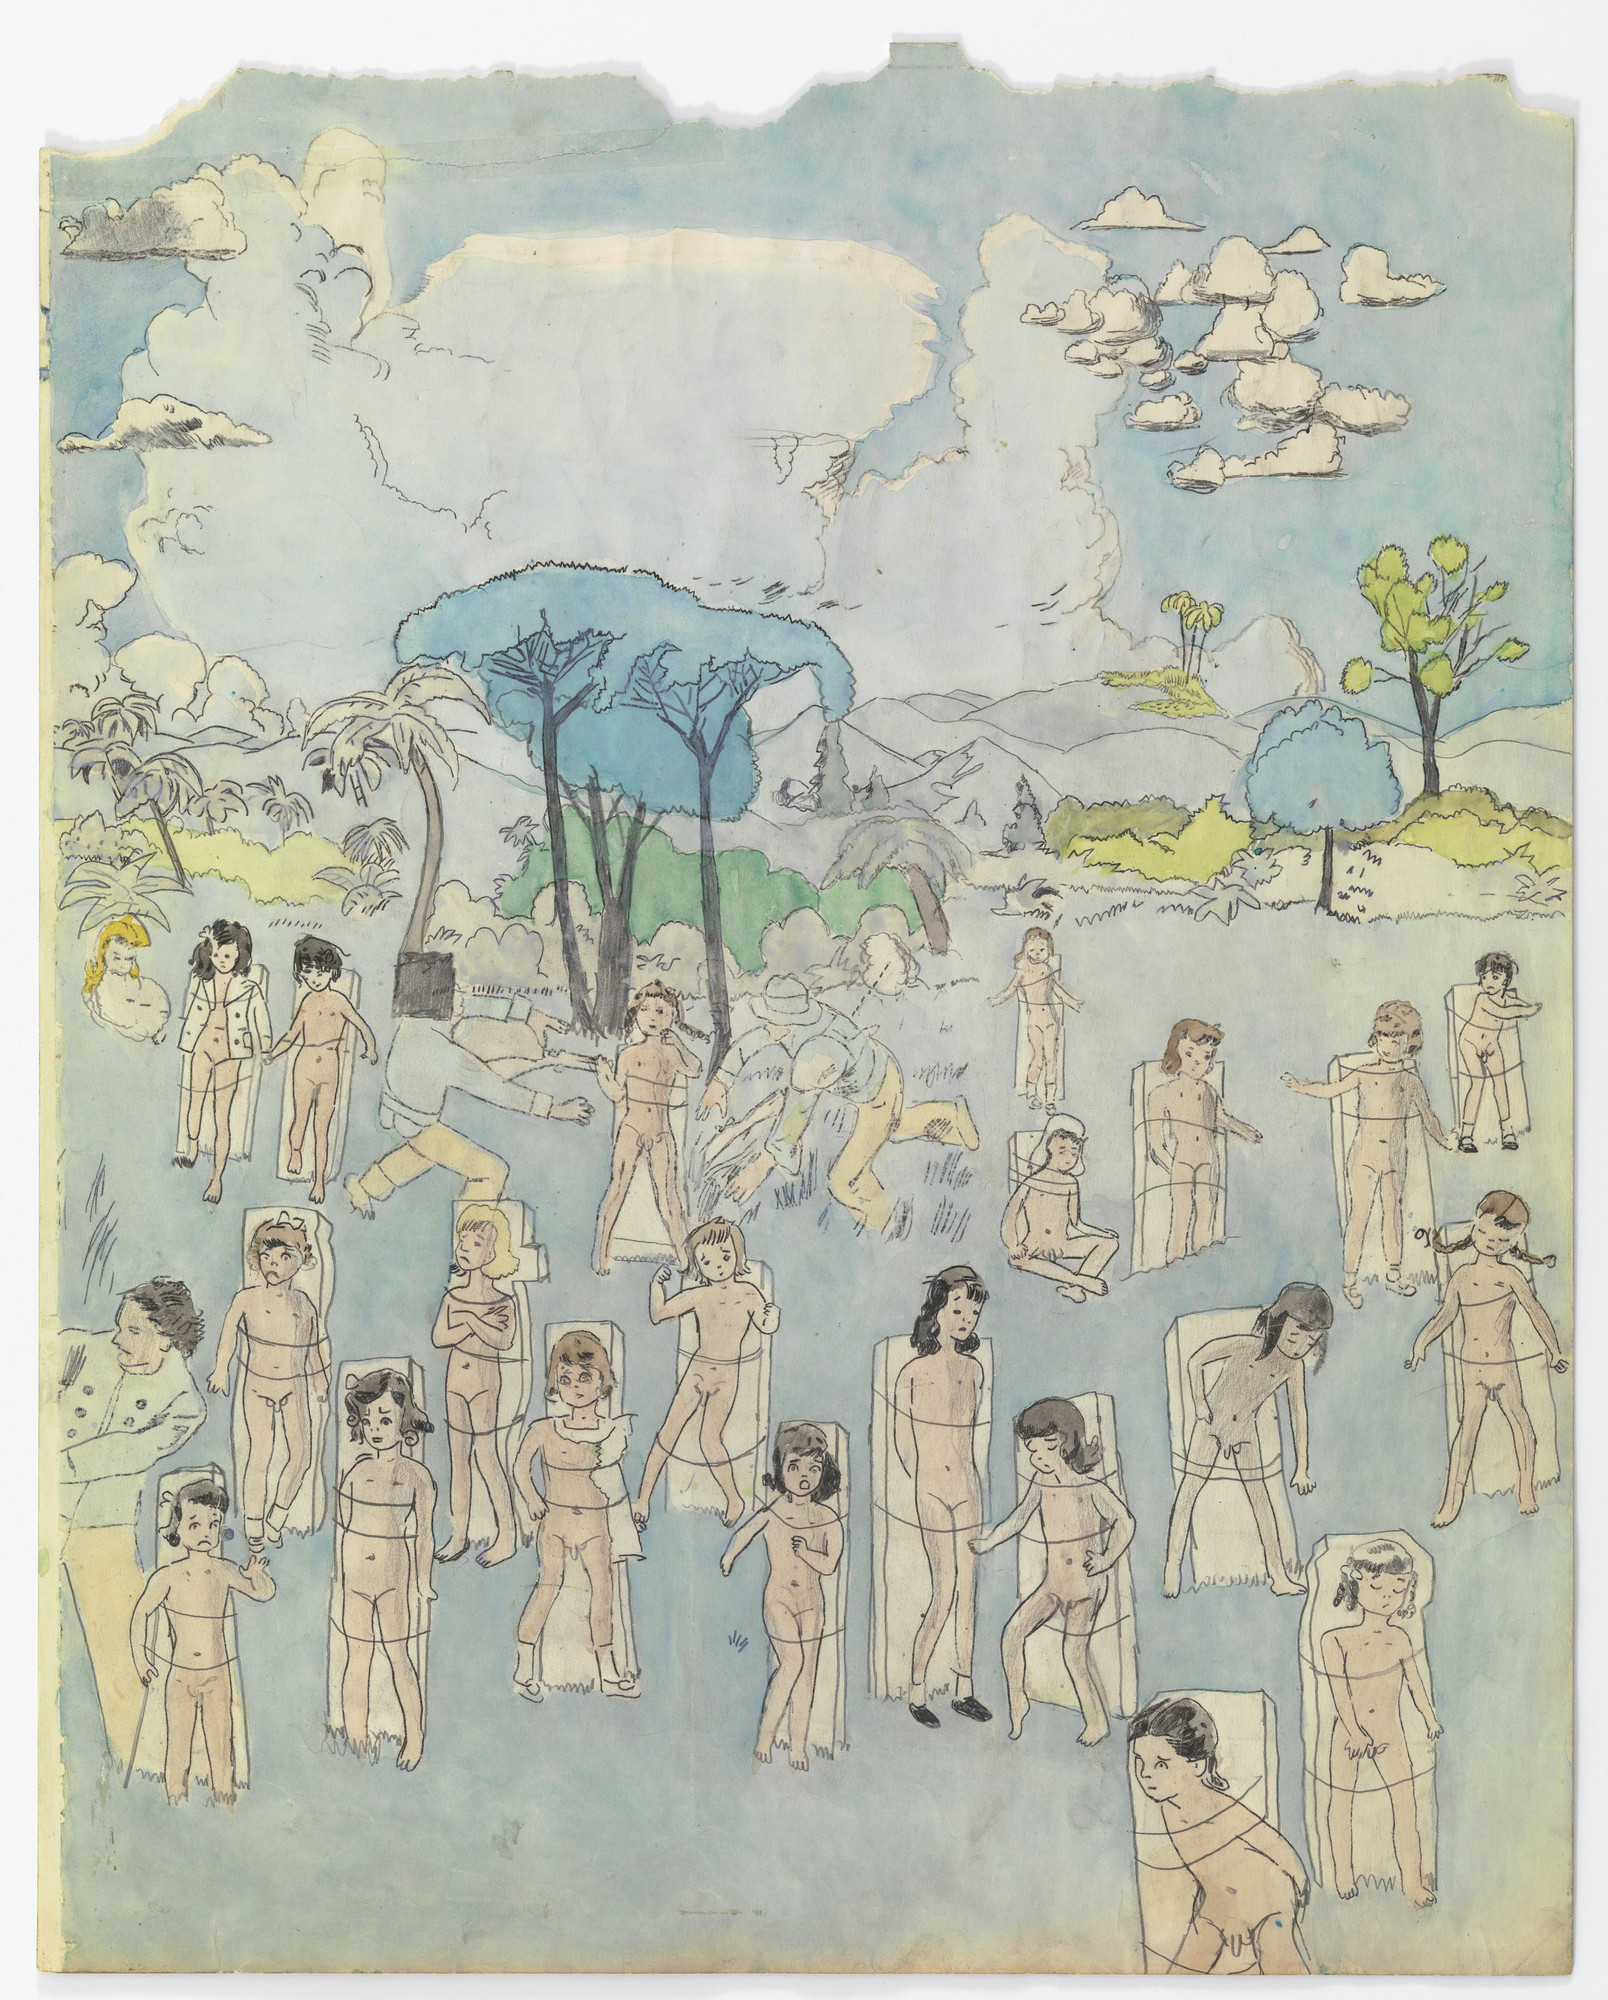 Henry Darger. a) Untitled (Many girls tied to slabs of stone) b) Untitled (Pastoral scene - girls with lasso). (n.d.)